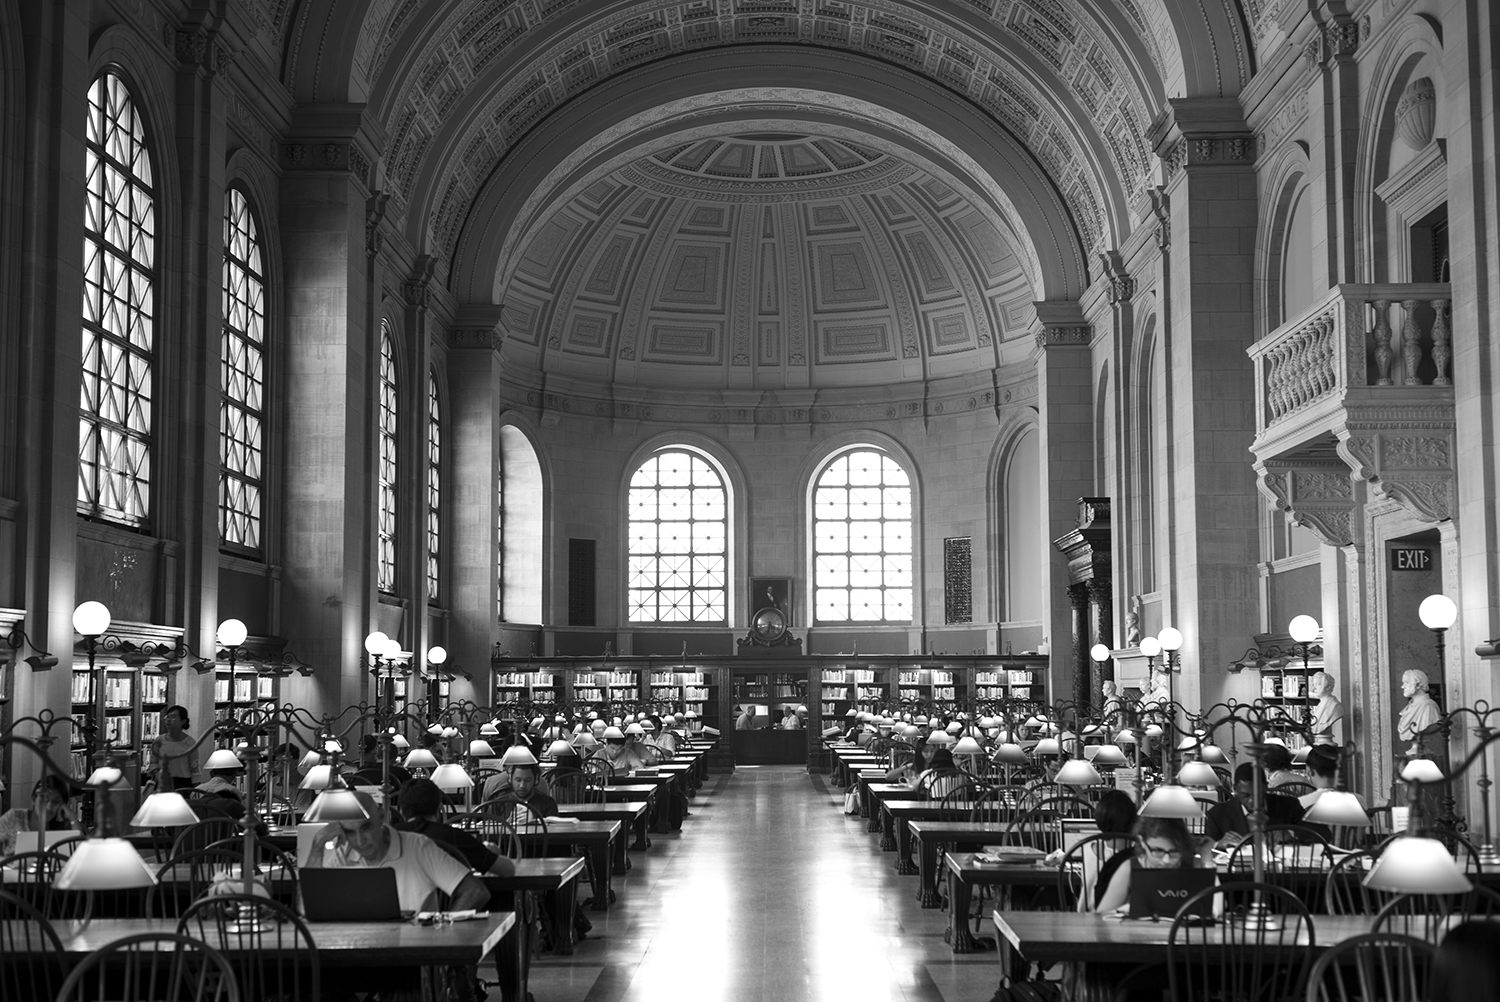 Boston Public Library.